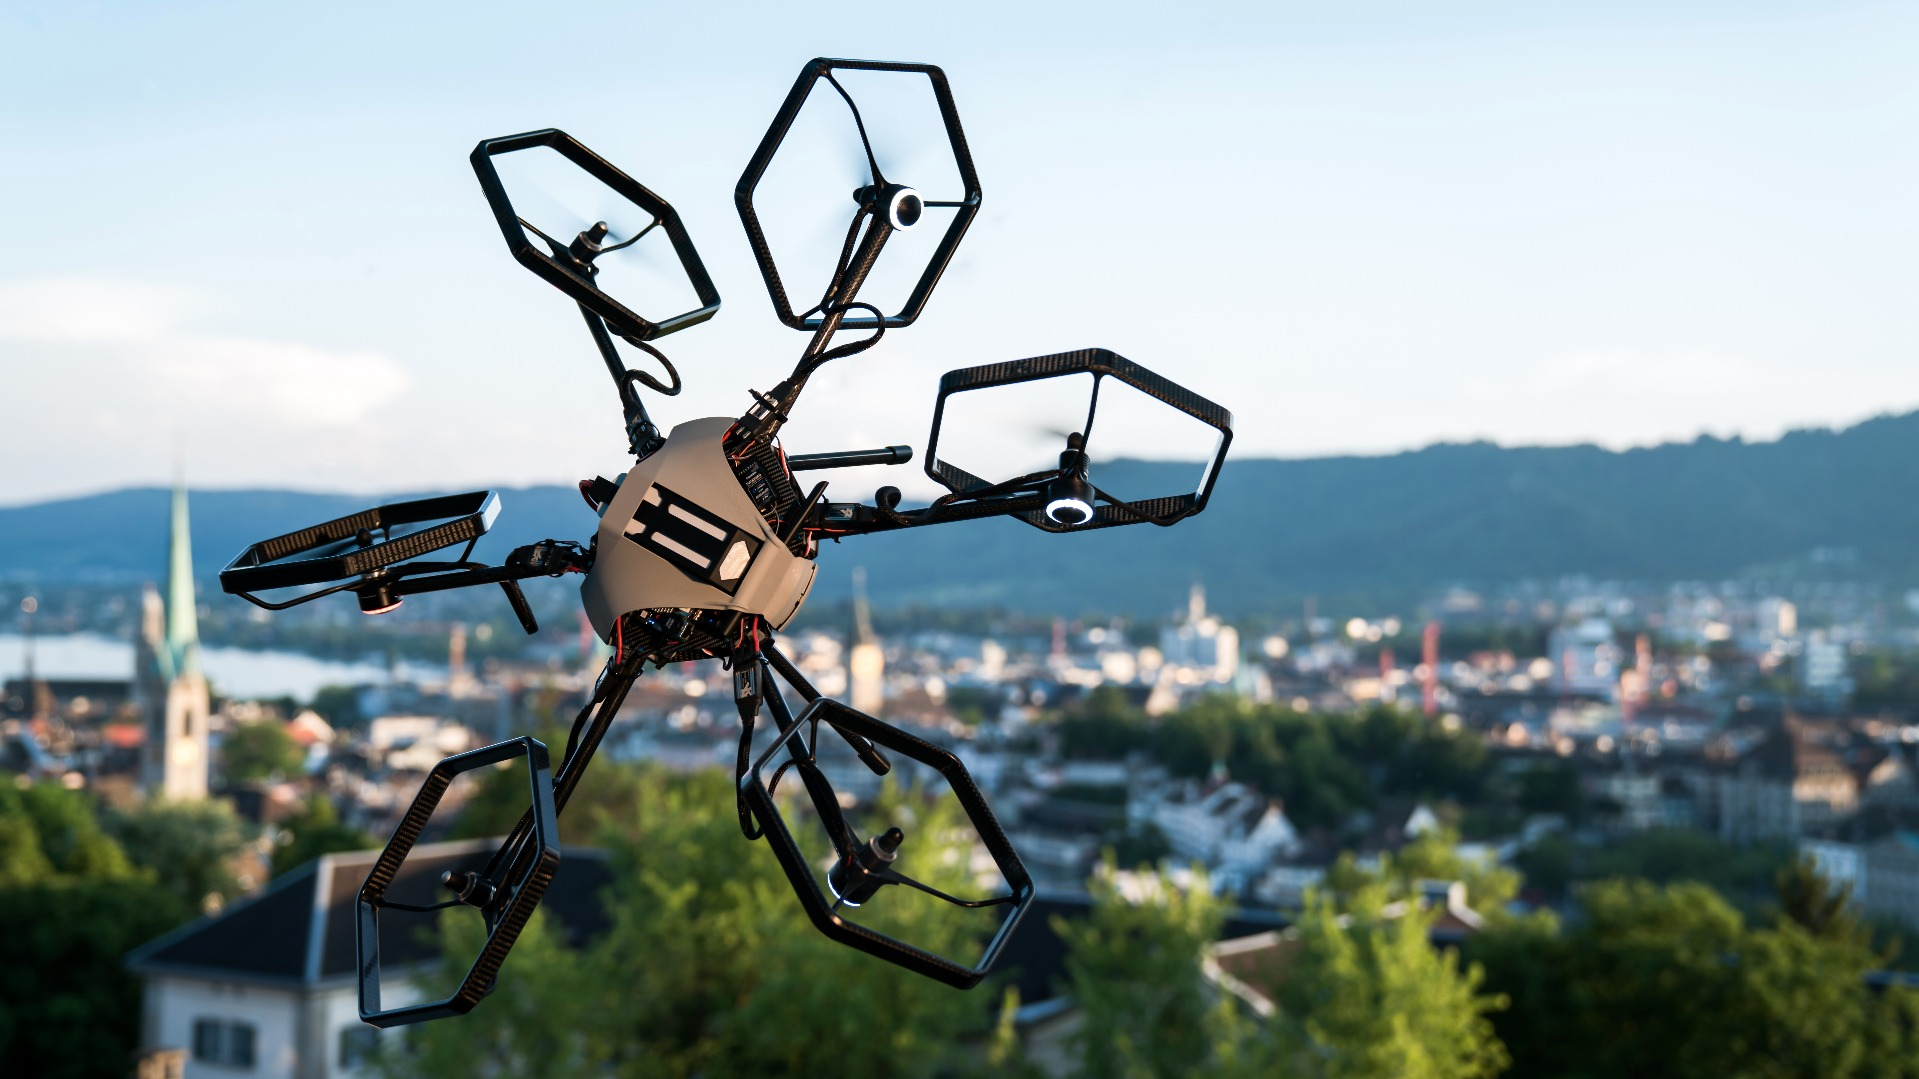 Tilt-rotor hexacopter puts a new twist on drone orientation